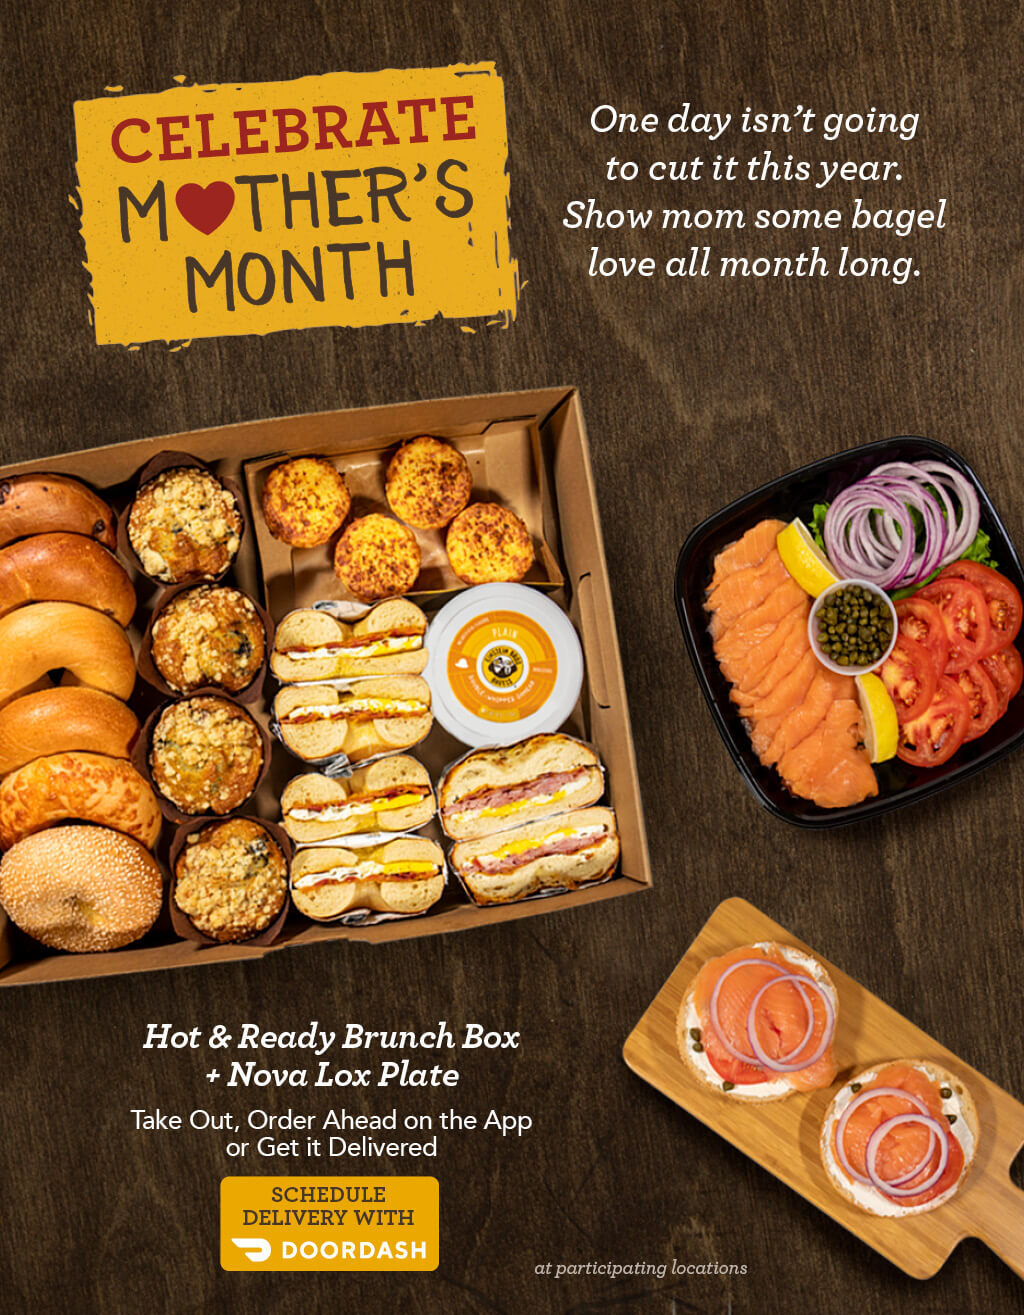 ROTATING SLIDER: Happy Mother's Month!!! CLICK to order a Brunch Box or Baker's Dozen Box for Delivery through DoorDash, for your Mom or Grandmother